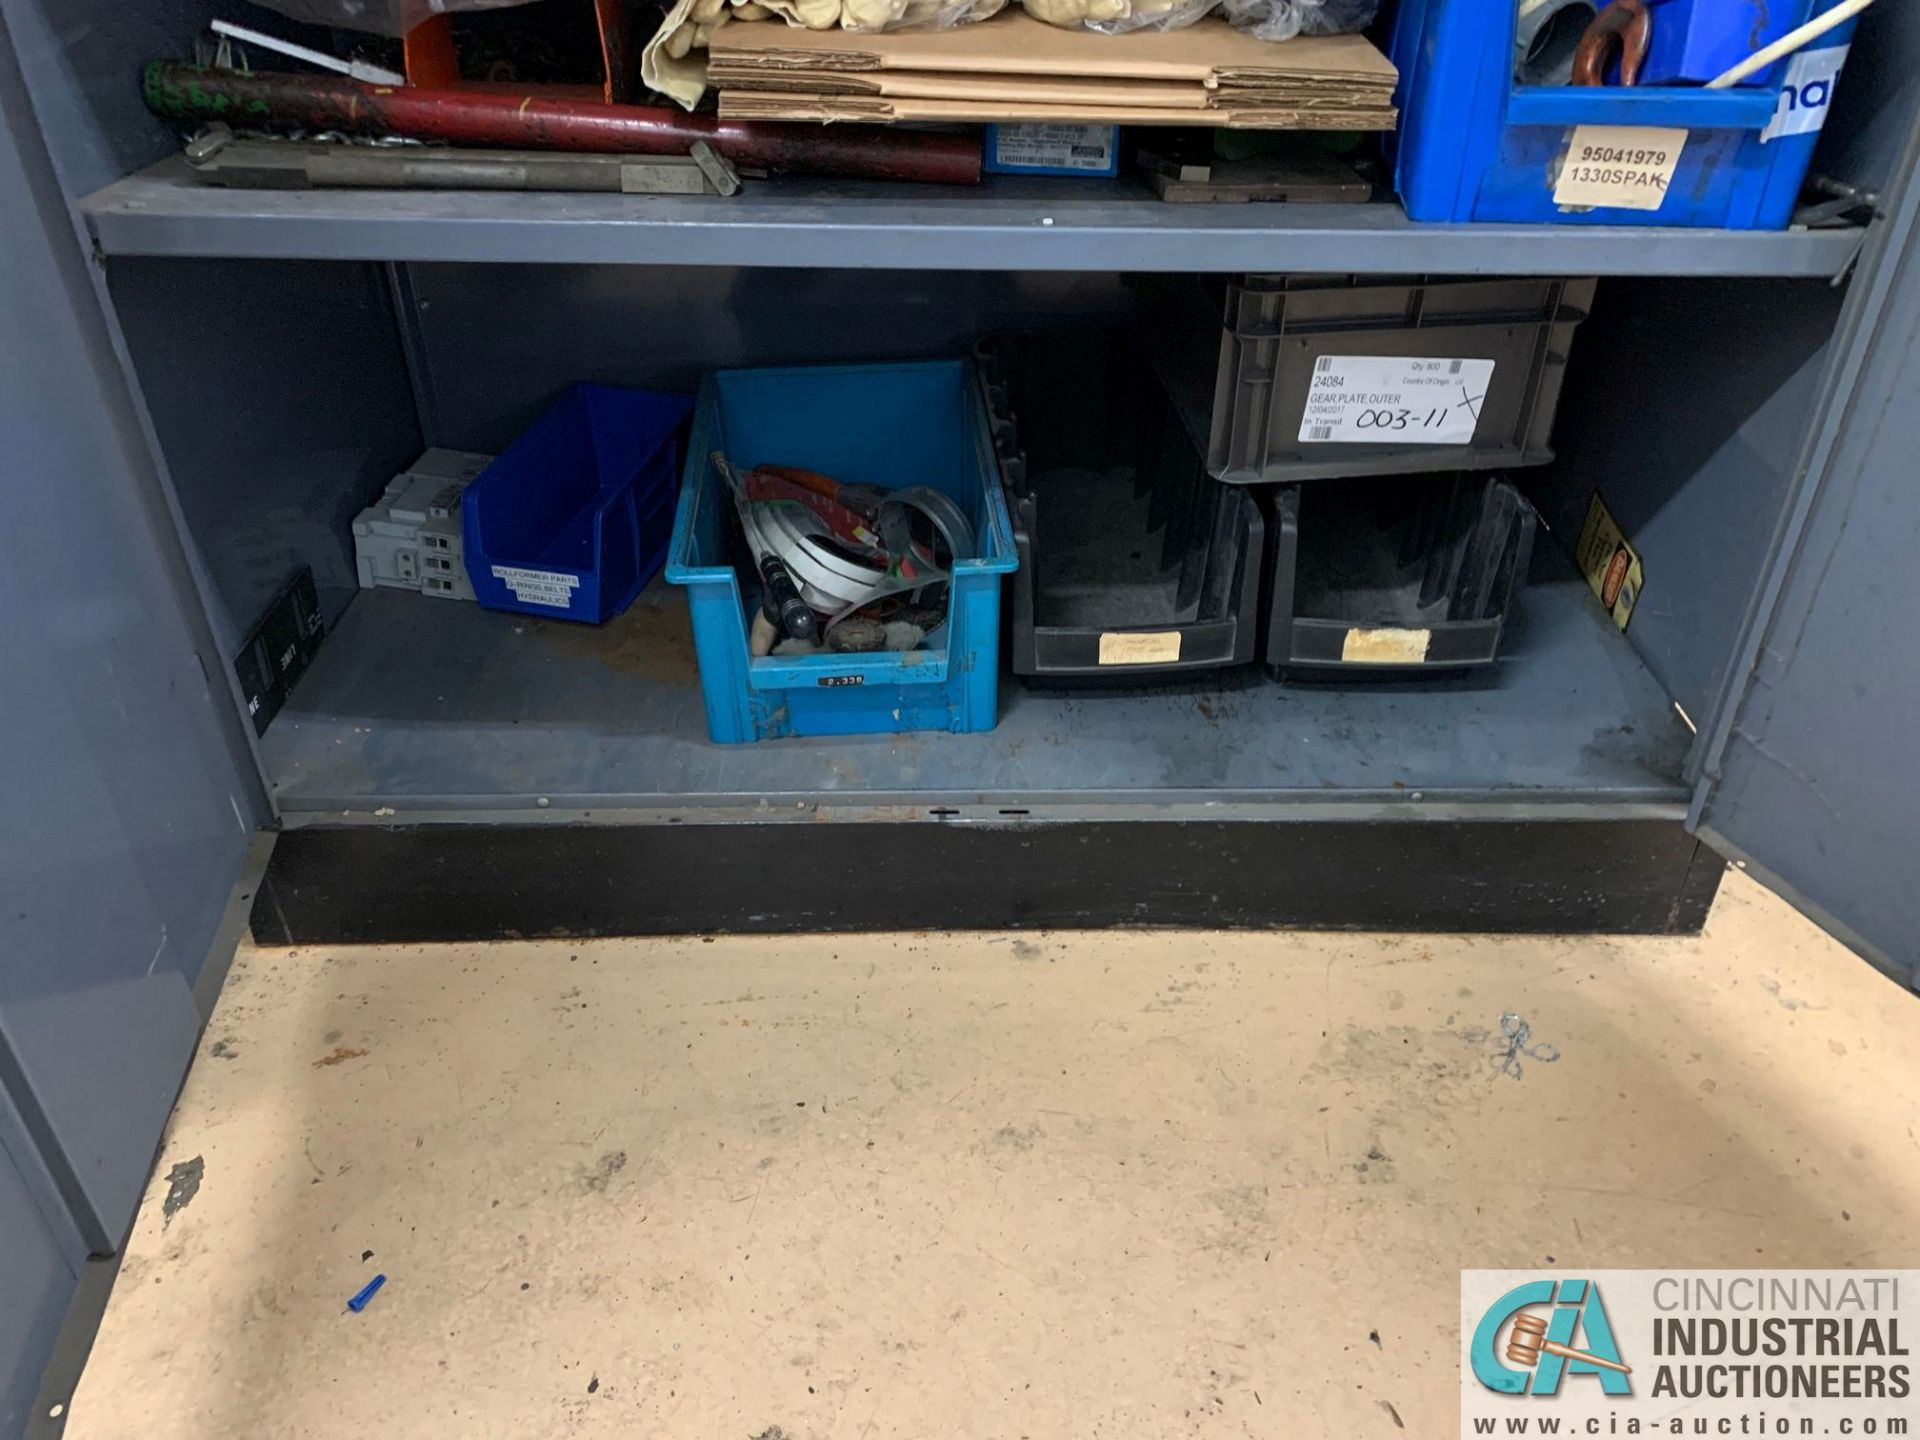 (LOT) (4) CABINETS WITH MAINTENANCE PARTS AND SUPPLIES, FUSES, WIRE, CONNECTORS AND RELATED - Image 4 of 13